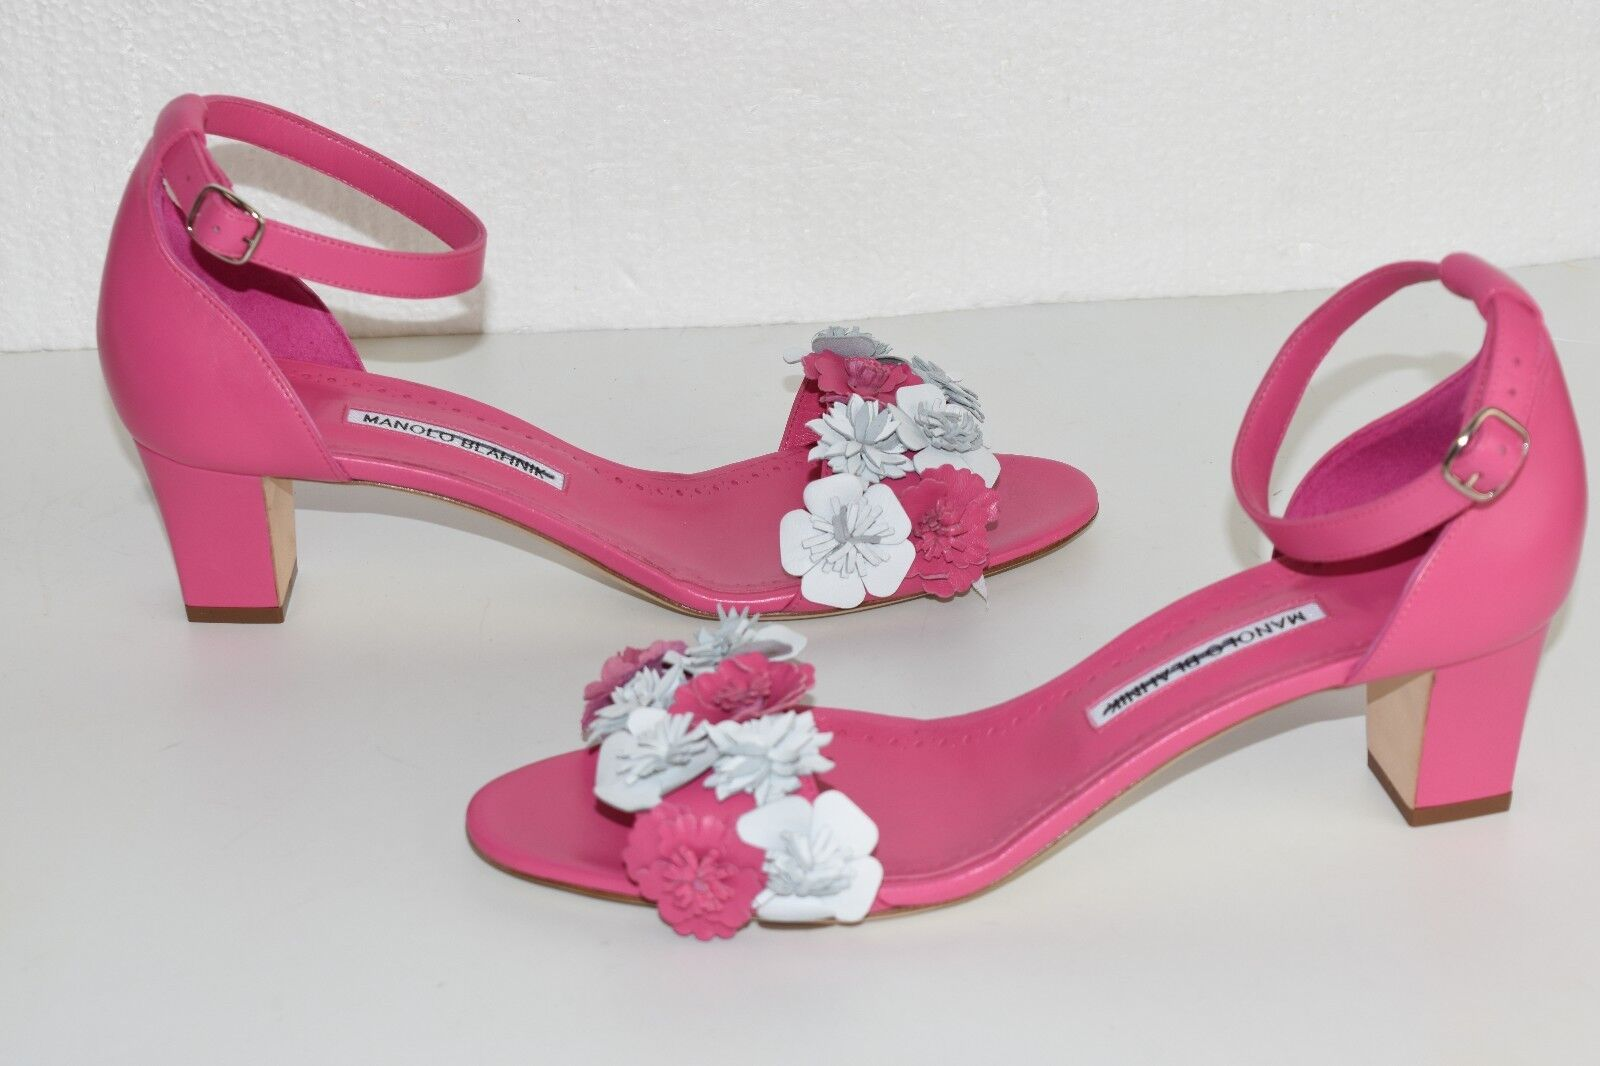 895 New Manolo Blahnik Laurfior 50 rose Flower Floral Floral Floral Sandals chaussures 41 41.5 c96d9c